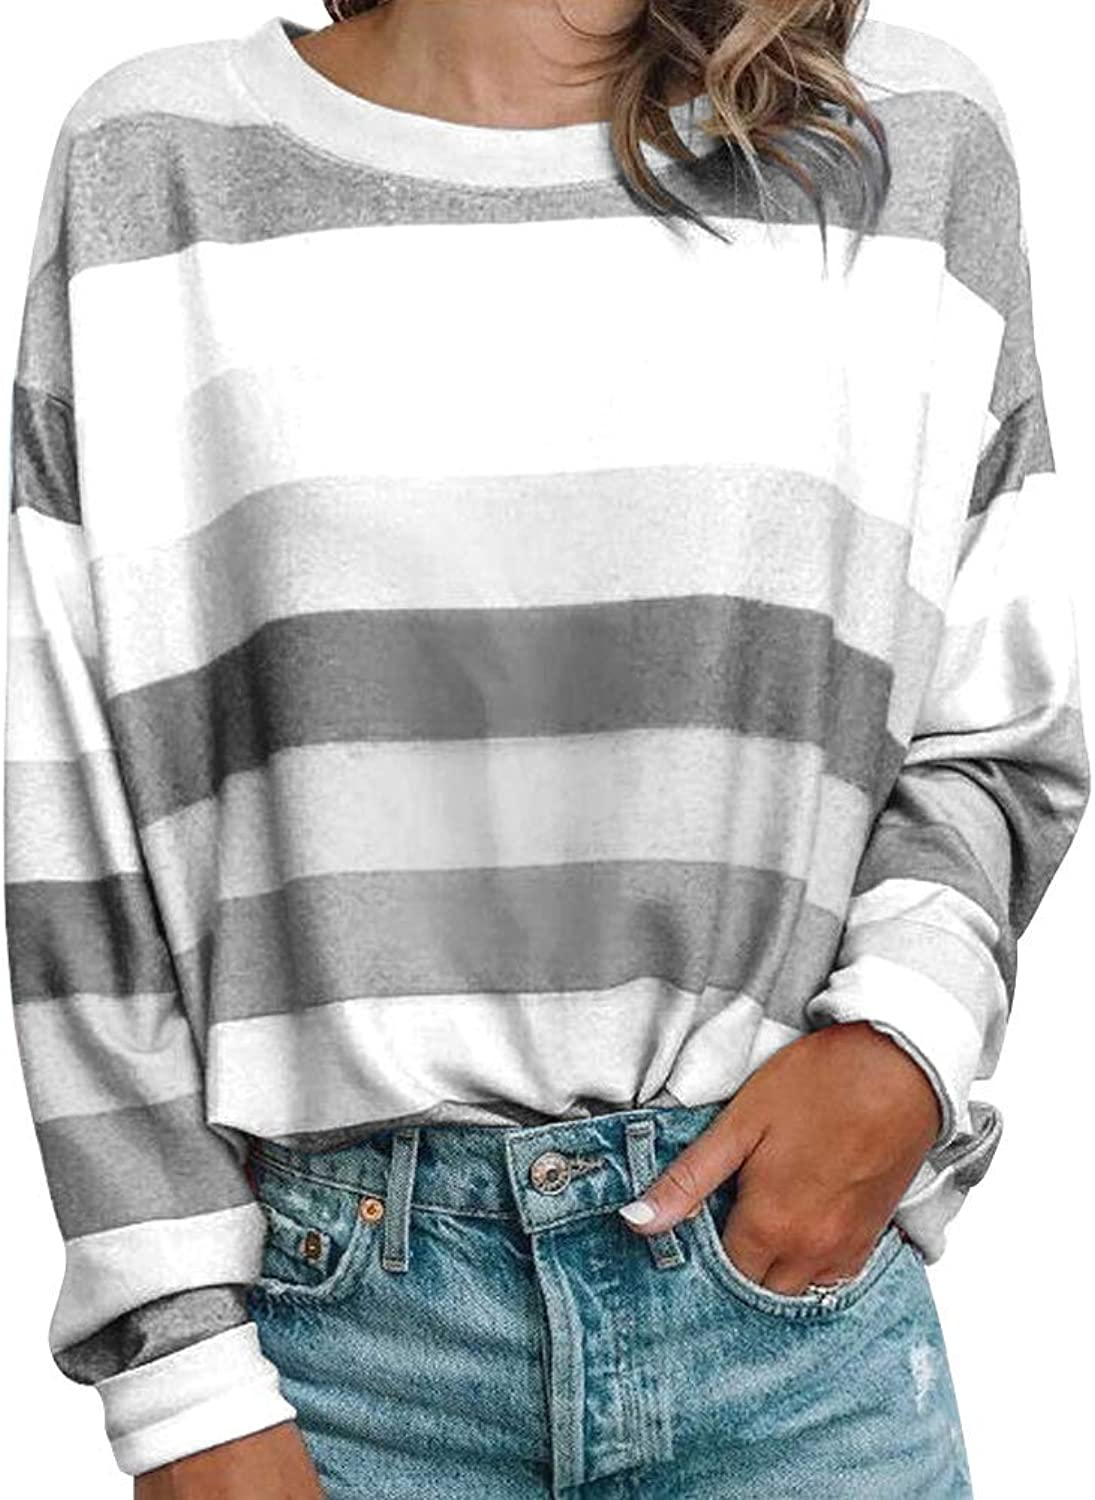 Allumk Women's ONeck Long Sleeve Contrast color Striped Casual Tunic Tops TShirt